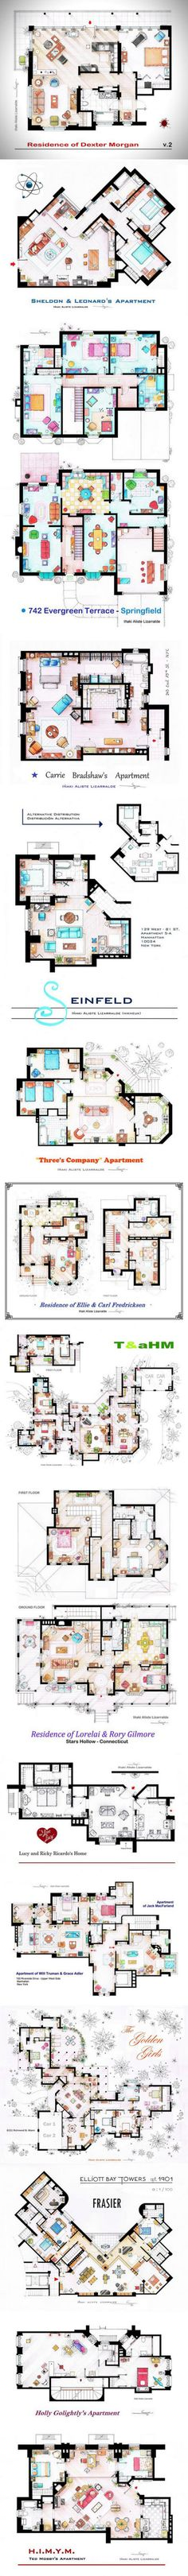 15 Famous TV Show Home Floor Plans